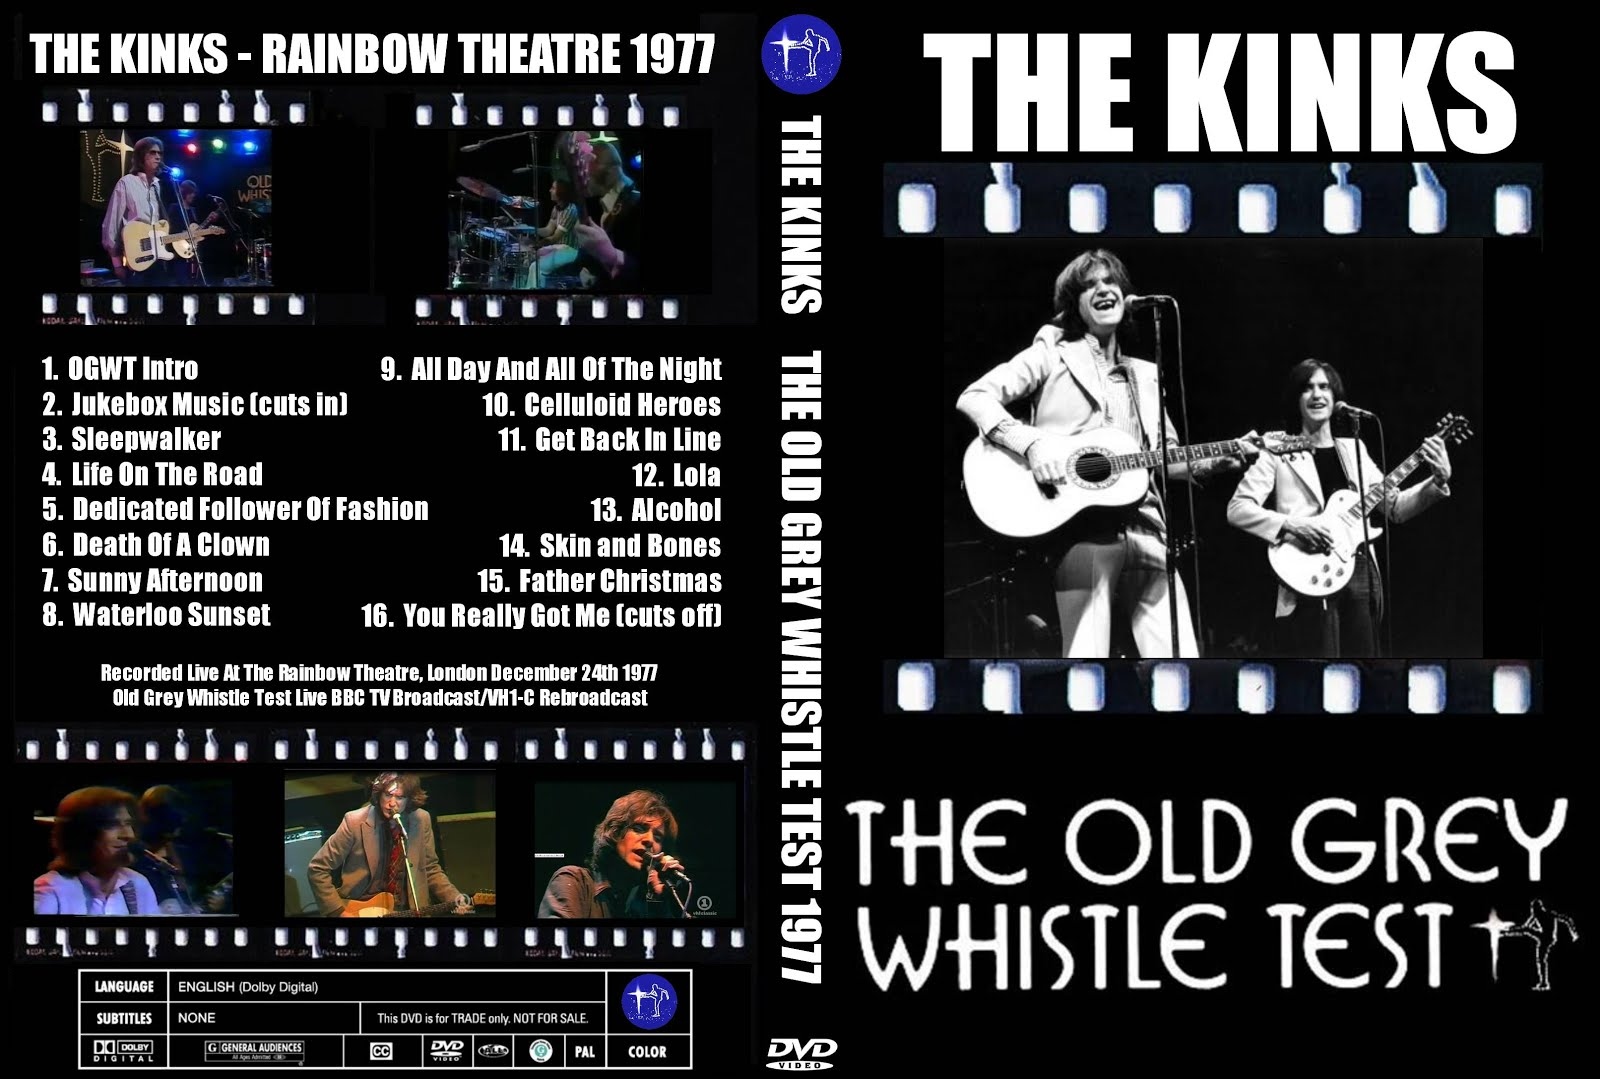 T.U.B.E.: The Kinks - 1977-12-24 - London, UK (DVDfull pro-shot)